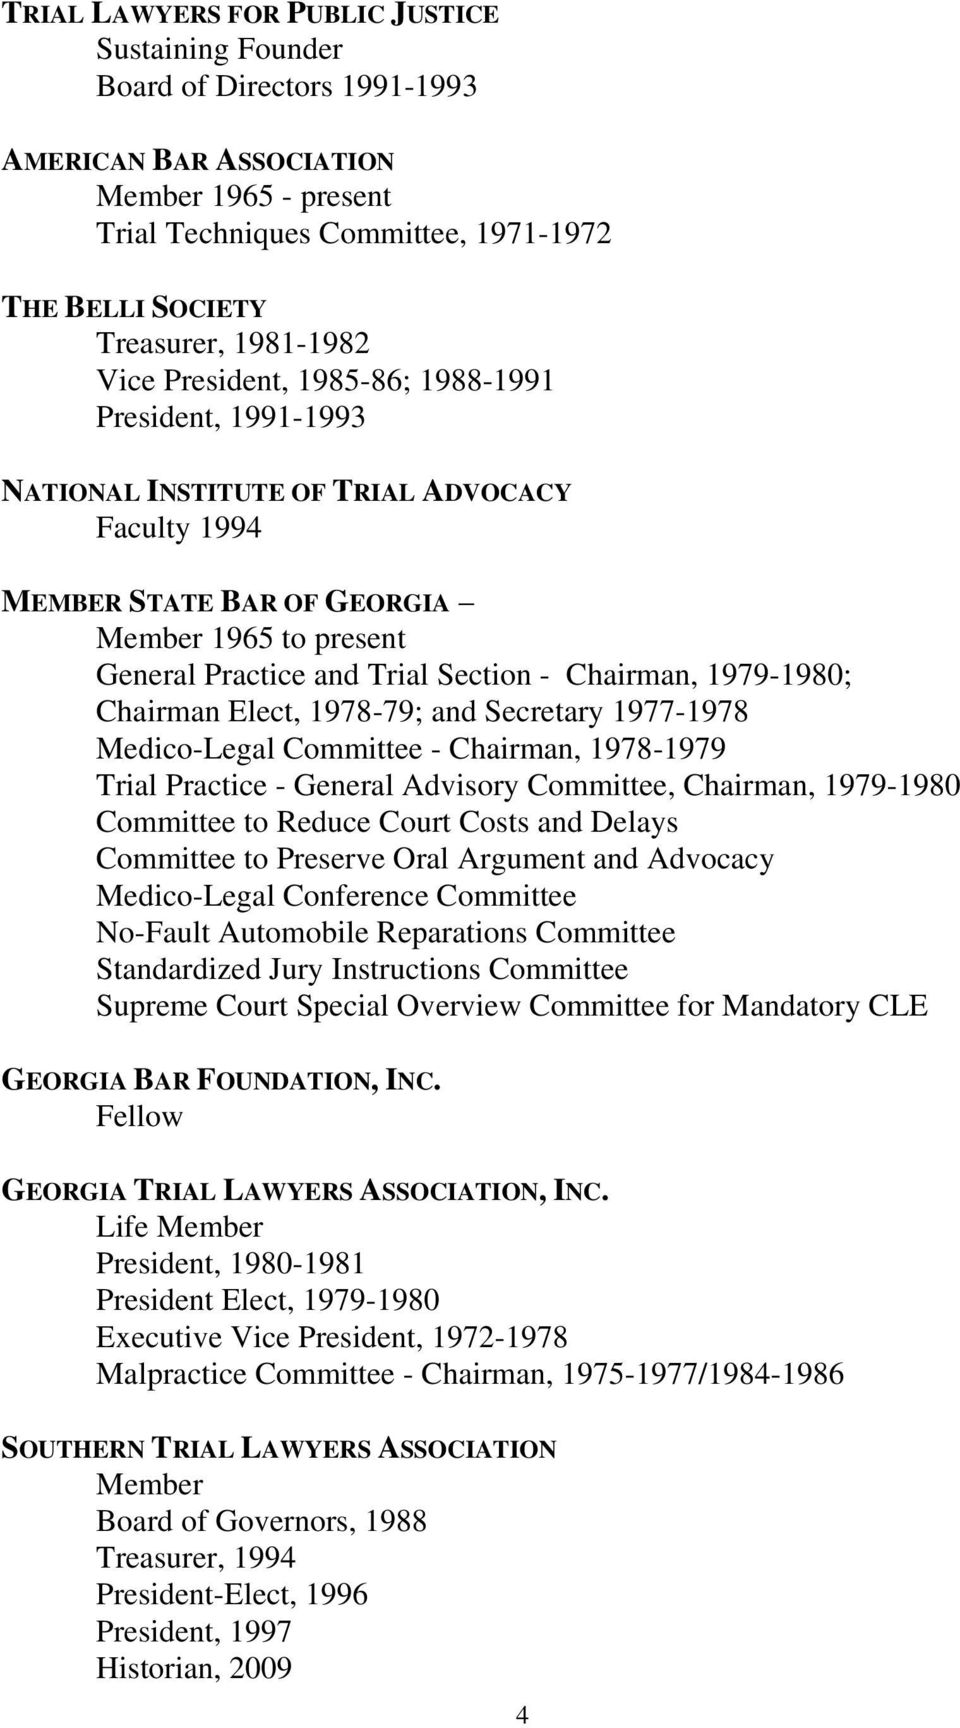 Section - Chairman, 1979-1980; Chairman Elect, 1978-79; and Secretary 1977-1978 Medico-Legal Committee - Chairman, 1978-1979 Trial Practice - General Advisory Committee, Chairman, 1979-1980 Committee